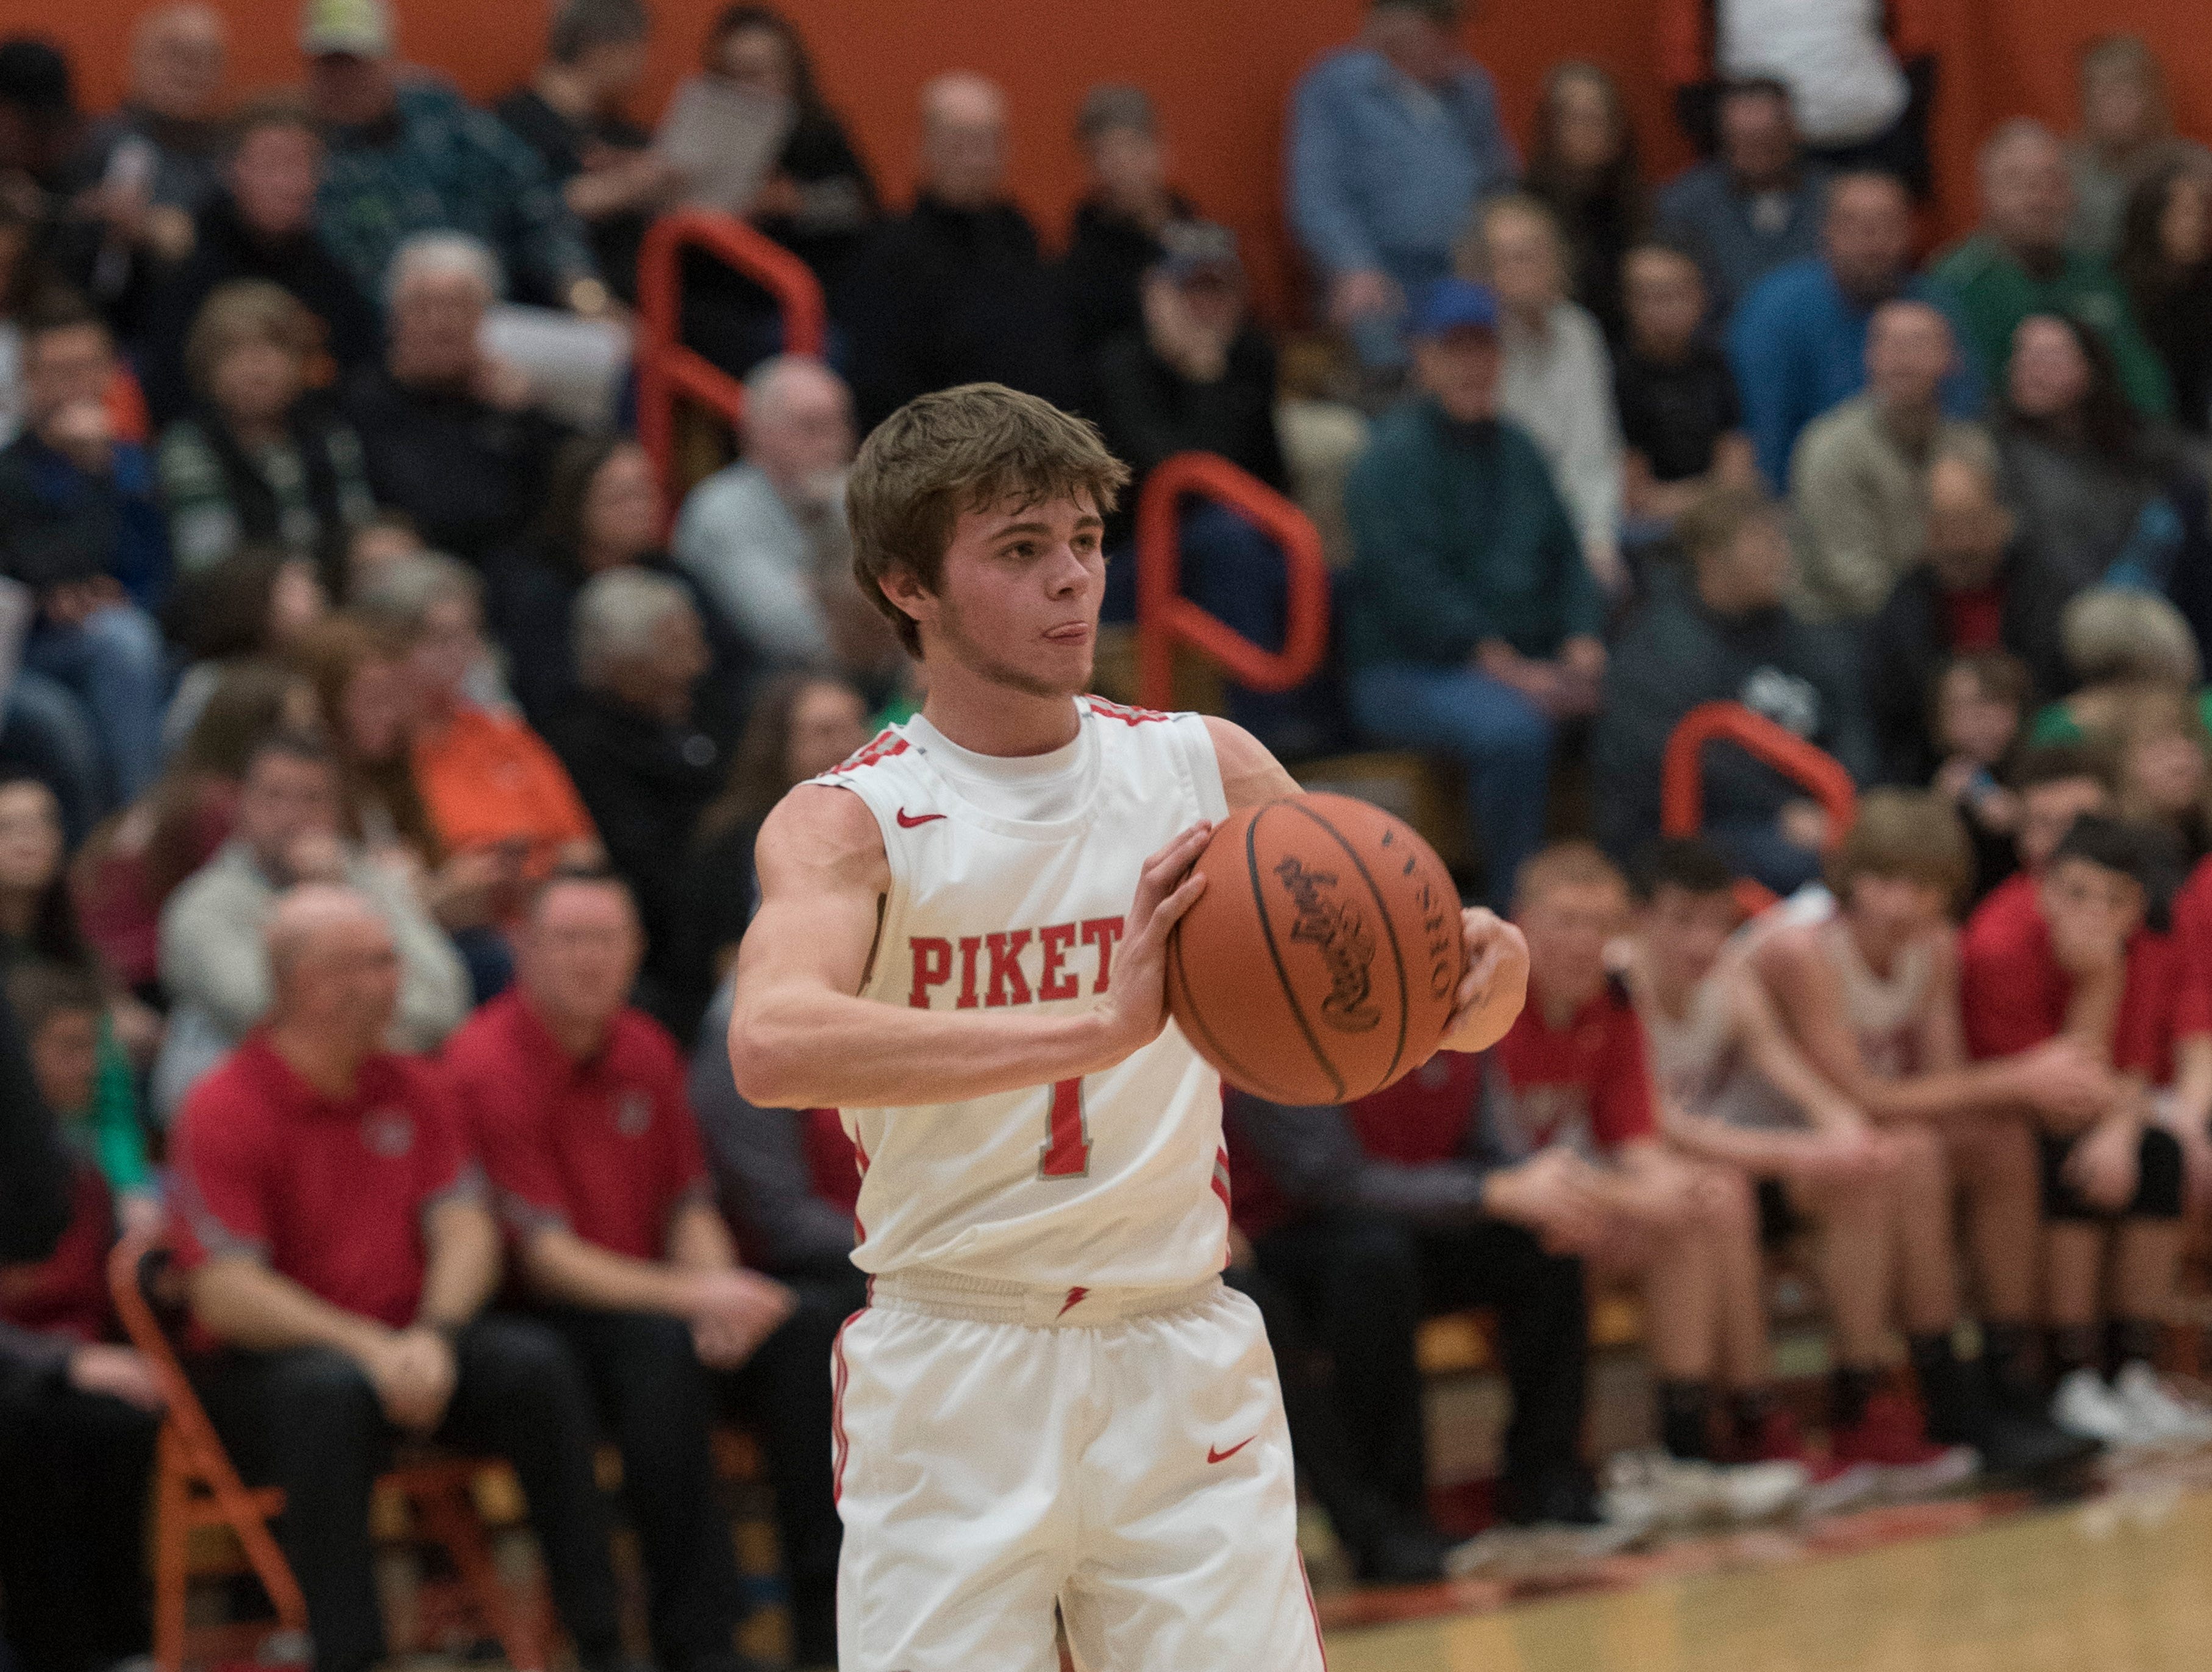 Western defeated Piketon 45-41 Friday night in Waverly, Ohio, during the first night of the Pike County Holiday Classic.